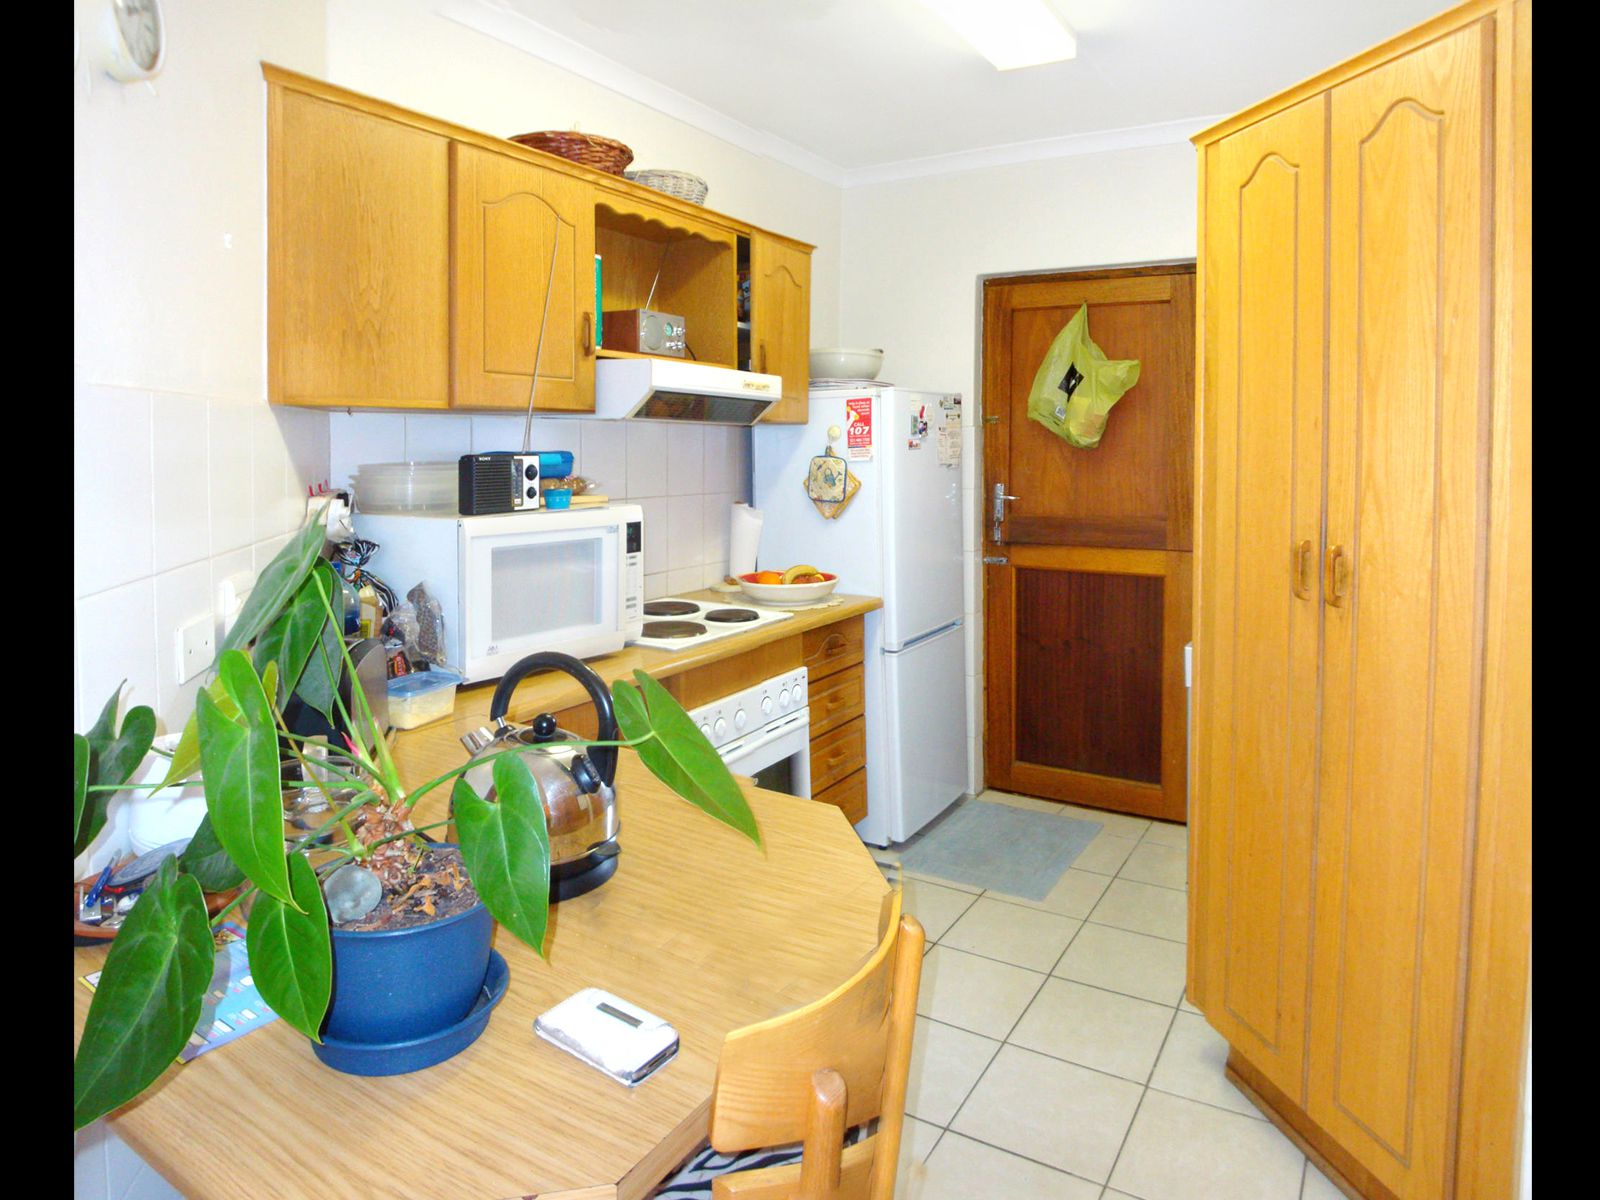 Strand South property for sale. Ref No: 13674227. Picture no 6